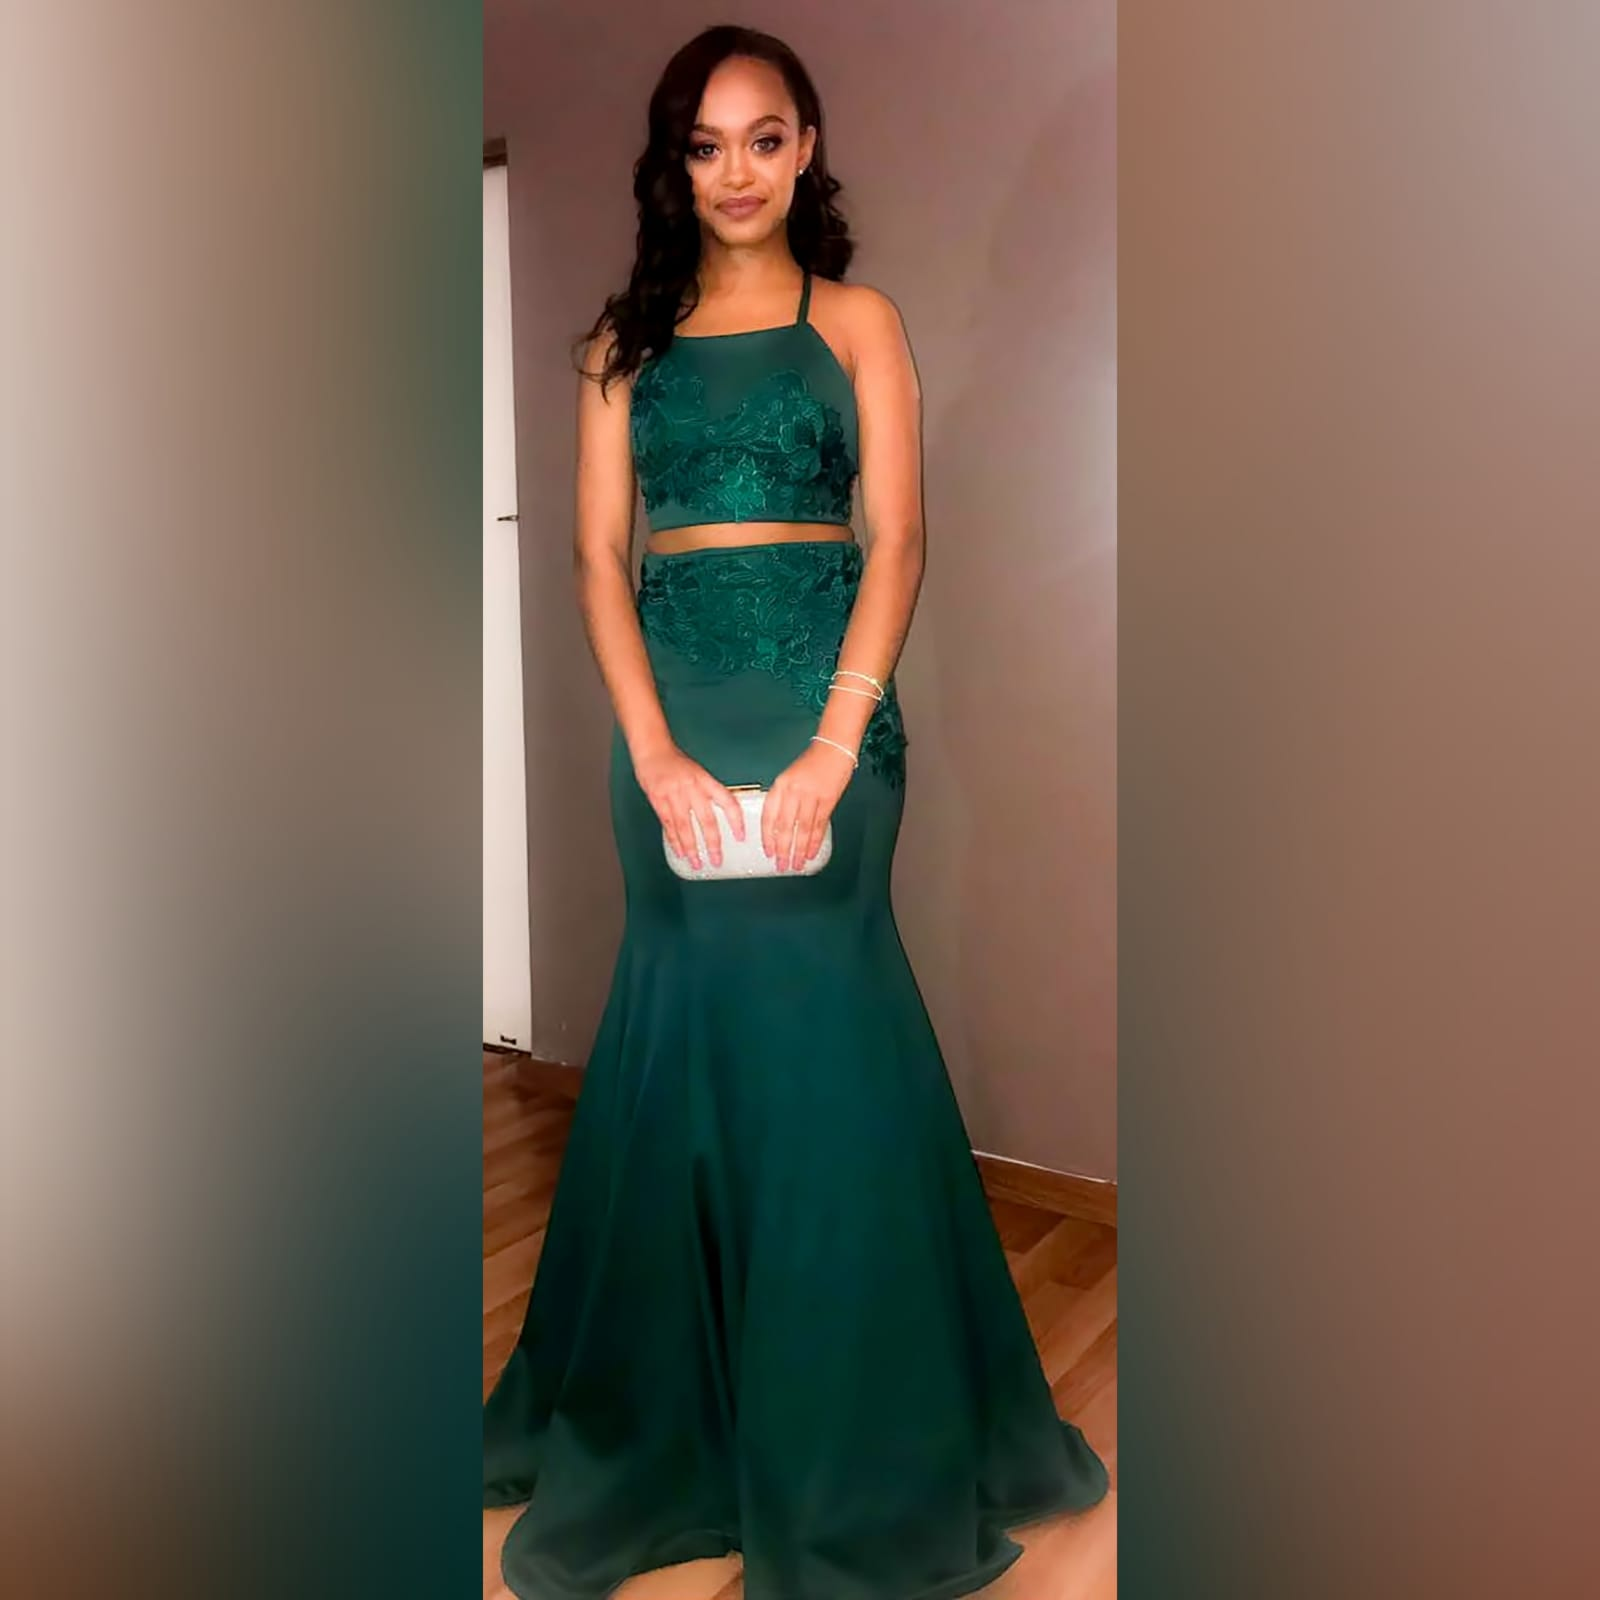 2 piece emerald green mermaid prom dress 9 2 piece emerald green mermaid prom dress. A gorgeous crop top with a lace-up open back, with a mermaid skirt. Lace detail on skirt and top for a classic touch.